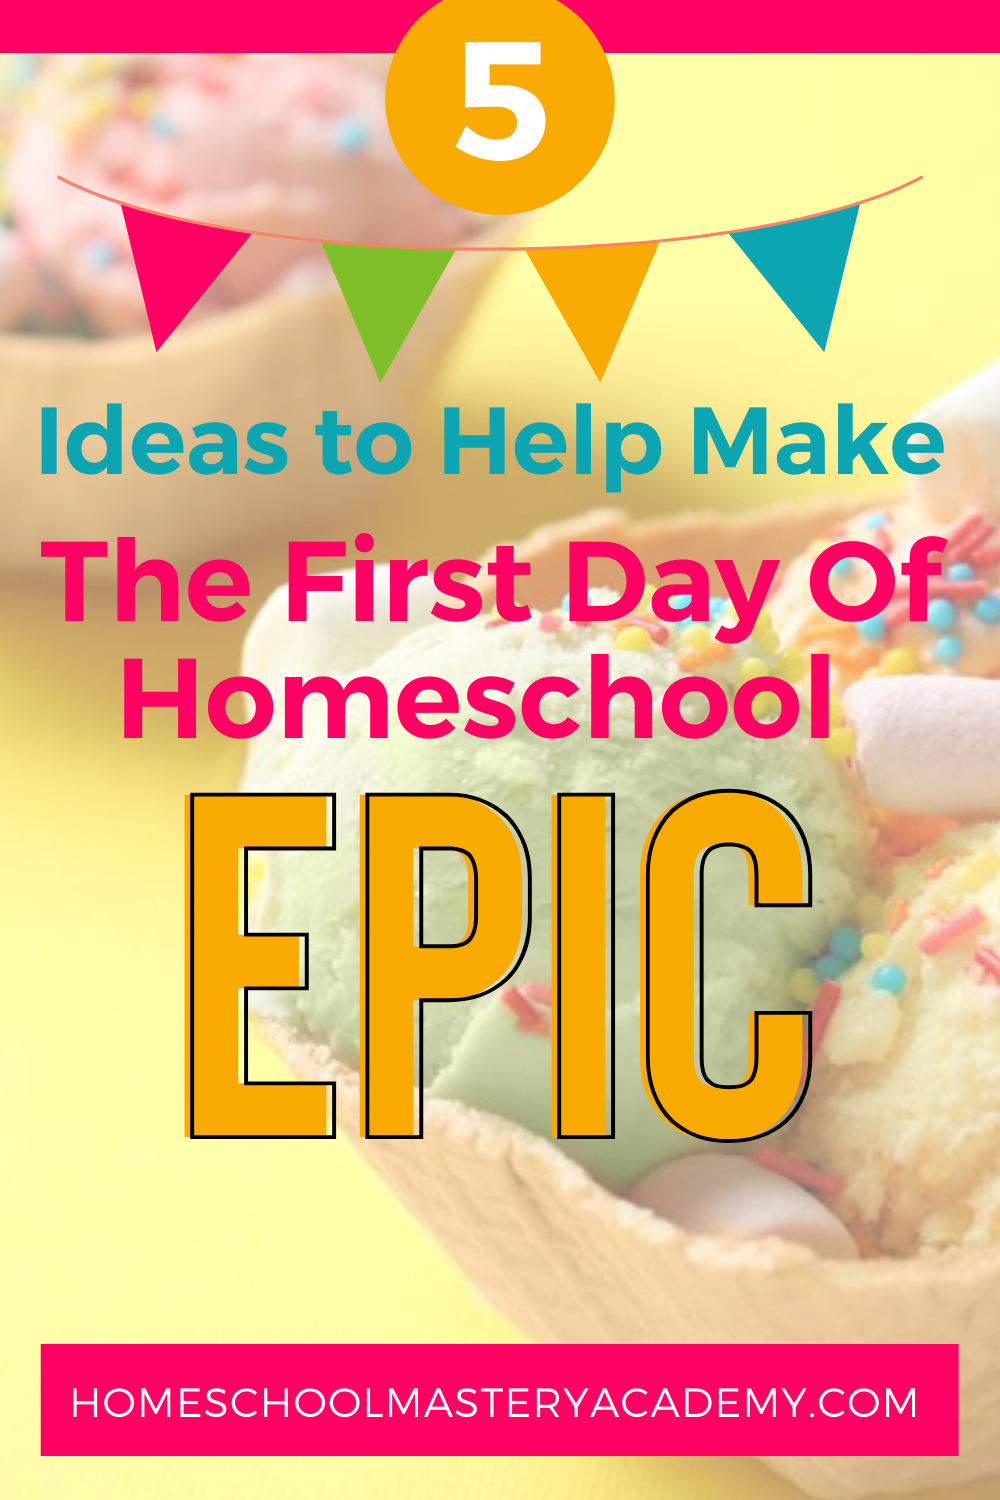 Why not create a back to homeschool tradition? Here are 5 ideas that will help you make the first day of homeschool epic for your kids! PLUS grab some FREE back-to-homeschool signs. #homeschool #firstdayofhomeschool #firstdayofhomeschoolsigns #homeschooling #backtohomeschool